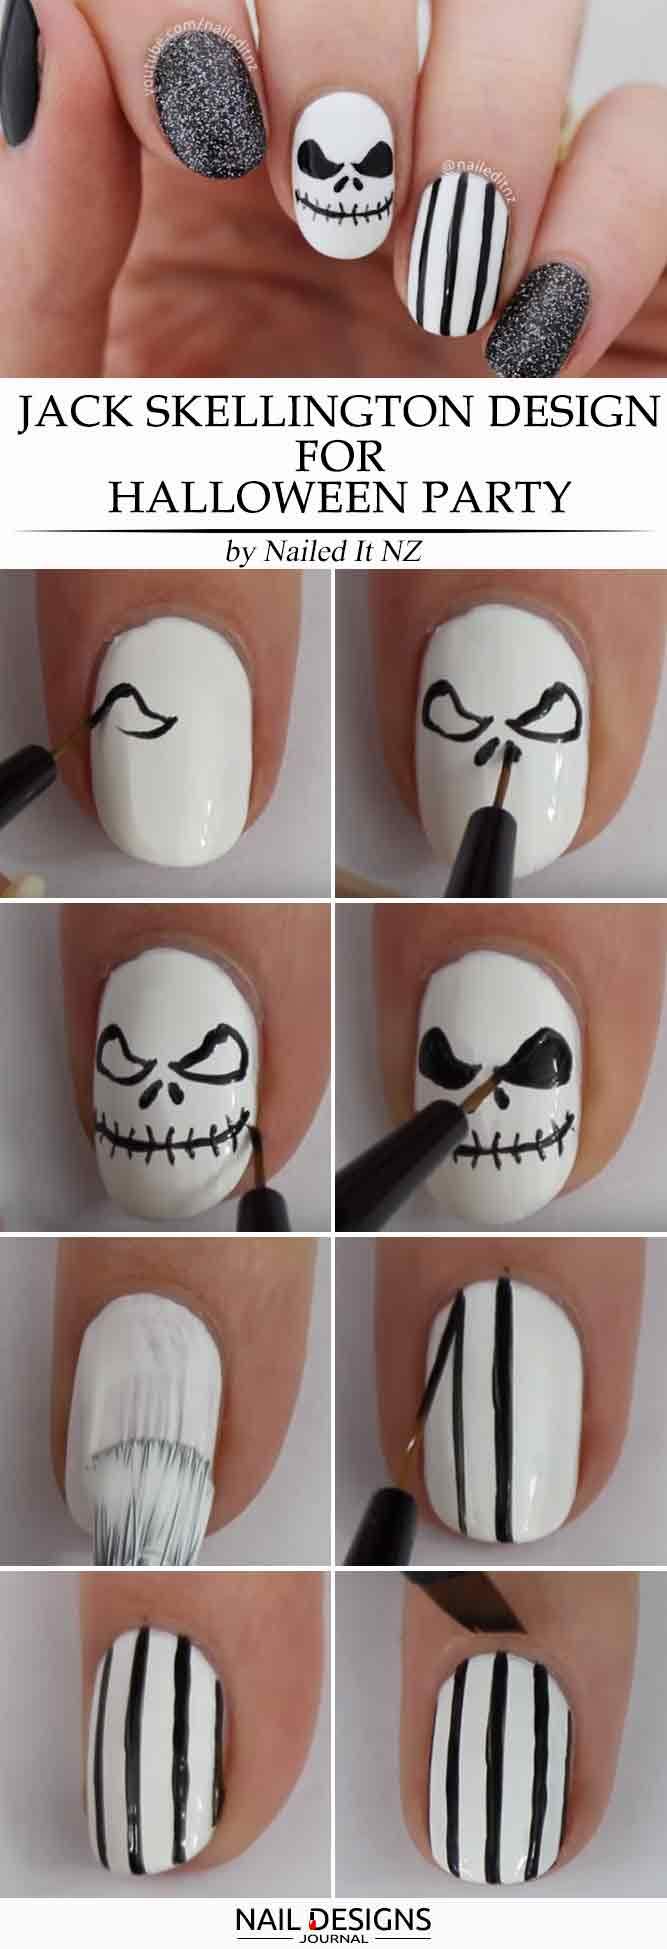 Jack Skellington Design for Halloween Party